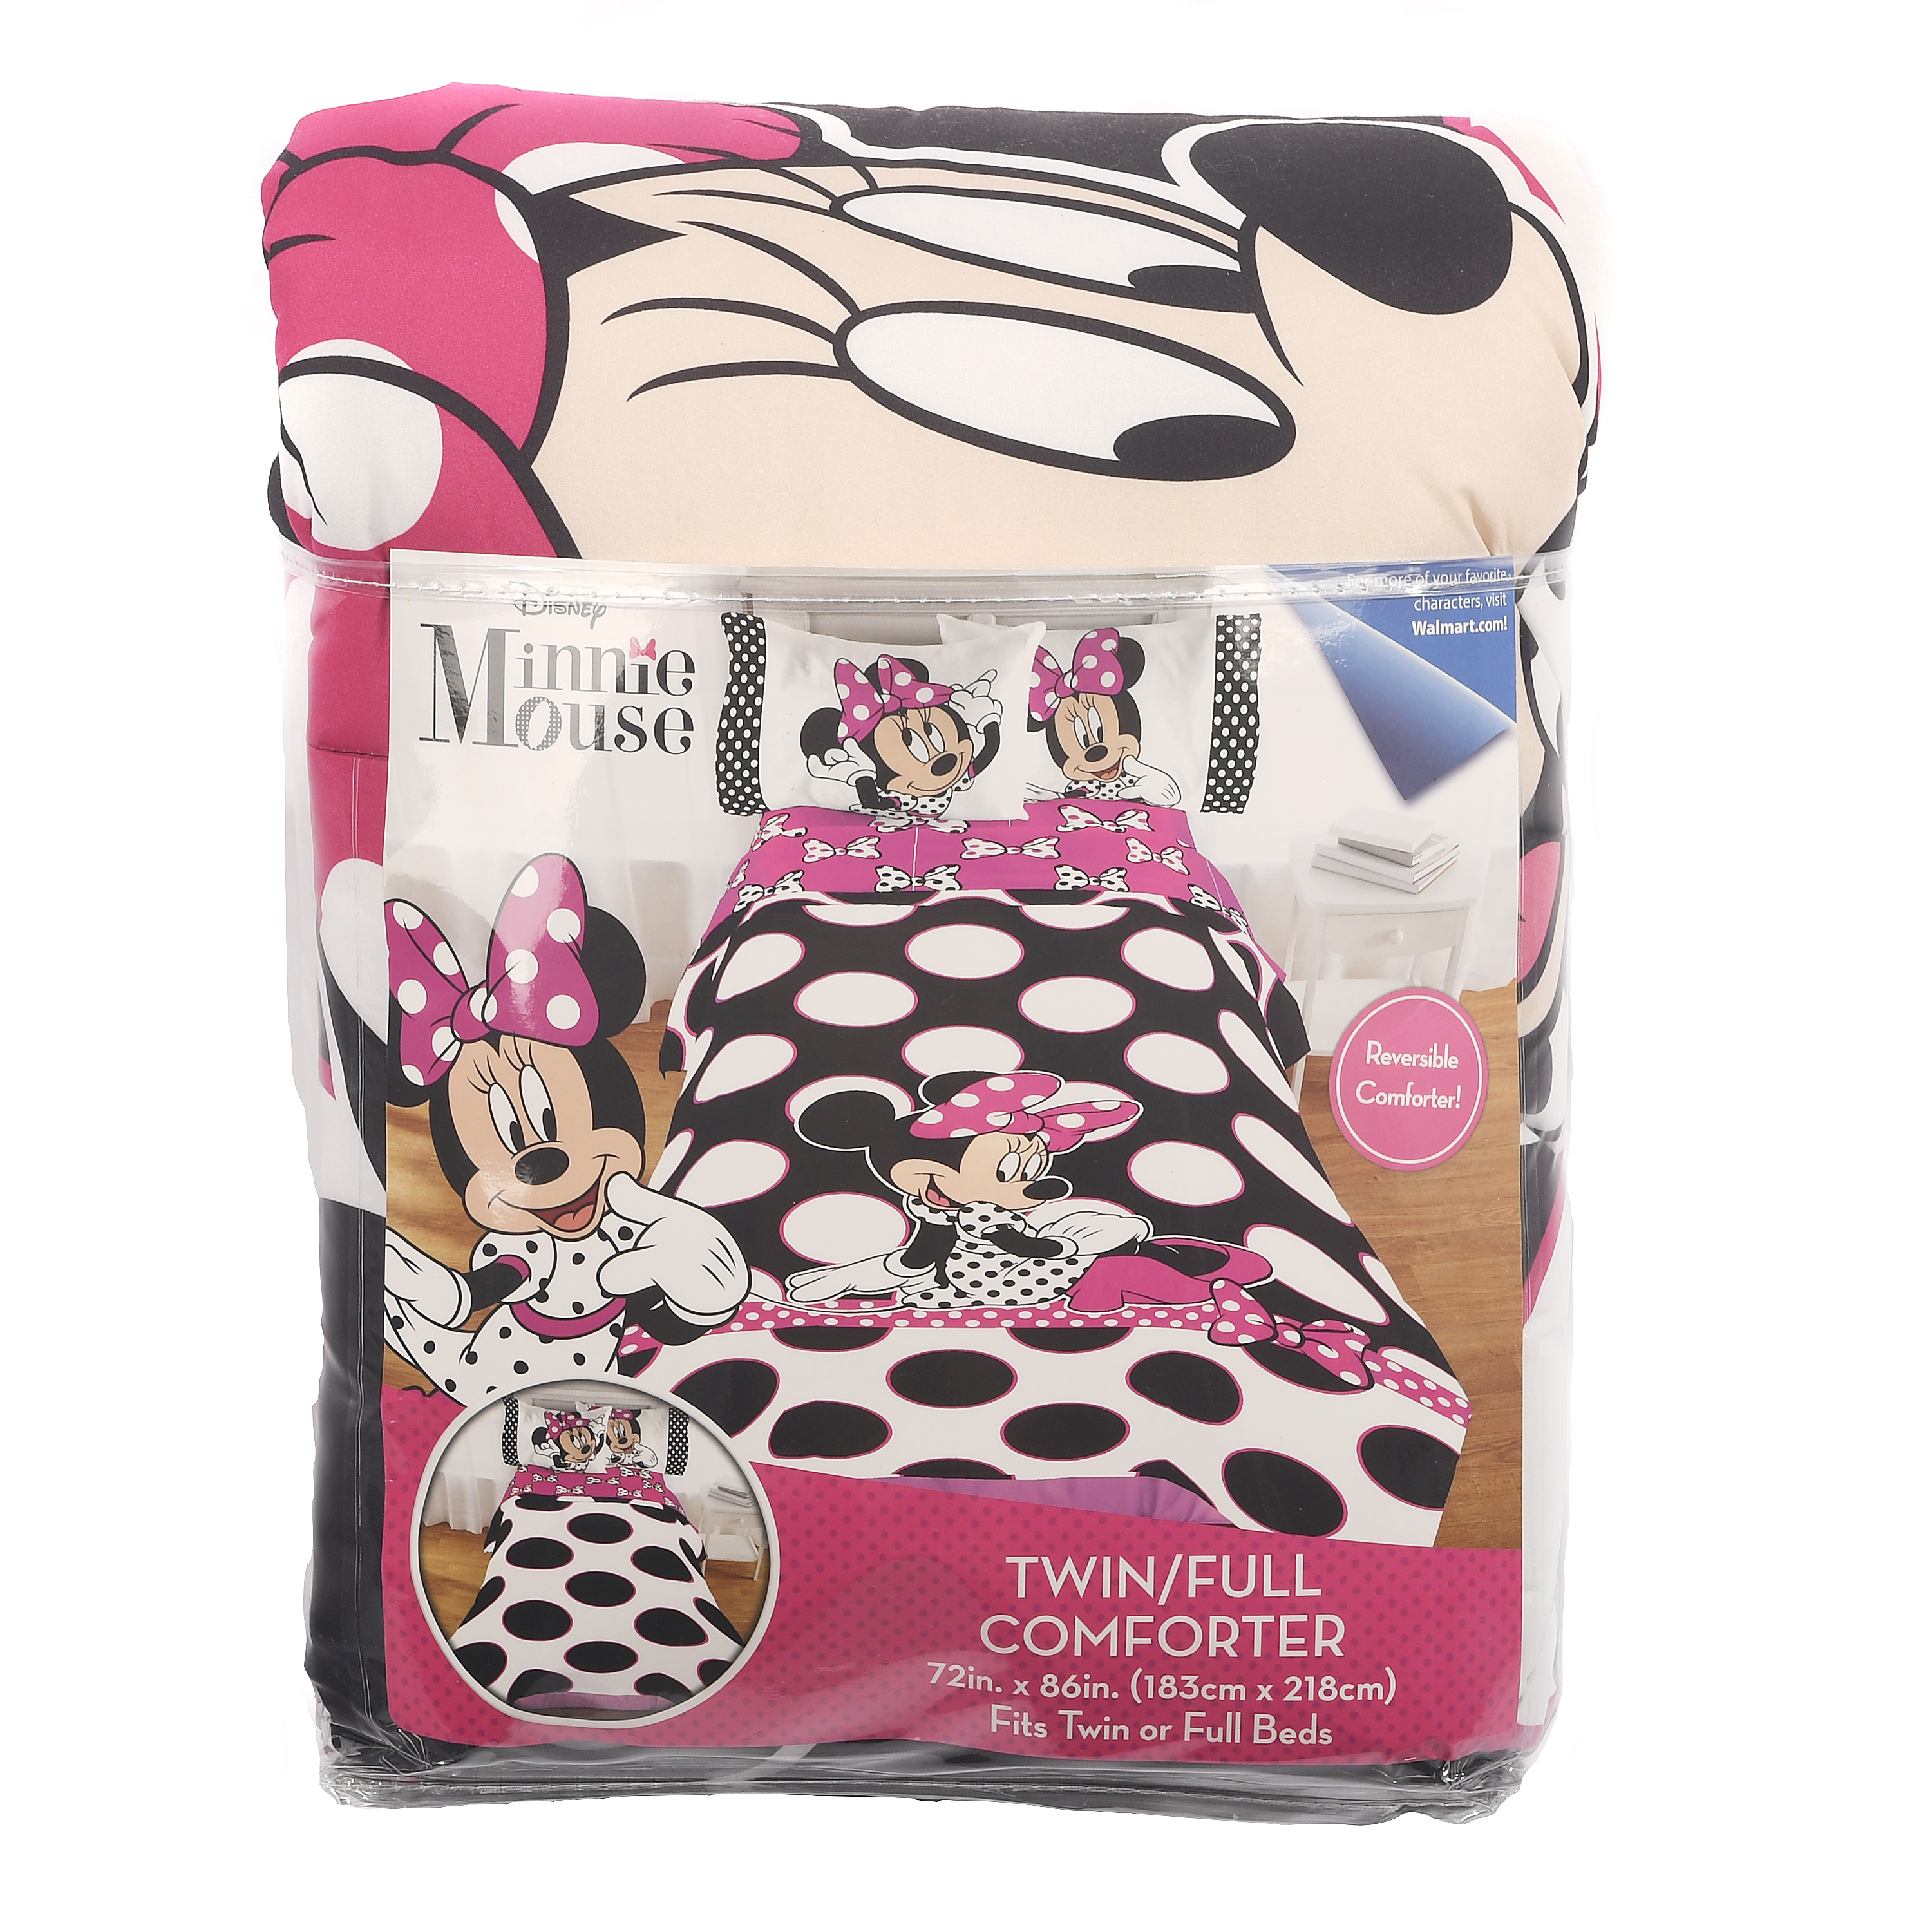 Minnie Mouse Reversible Comforter